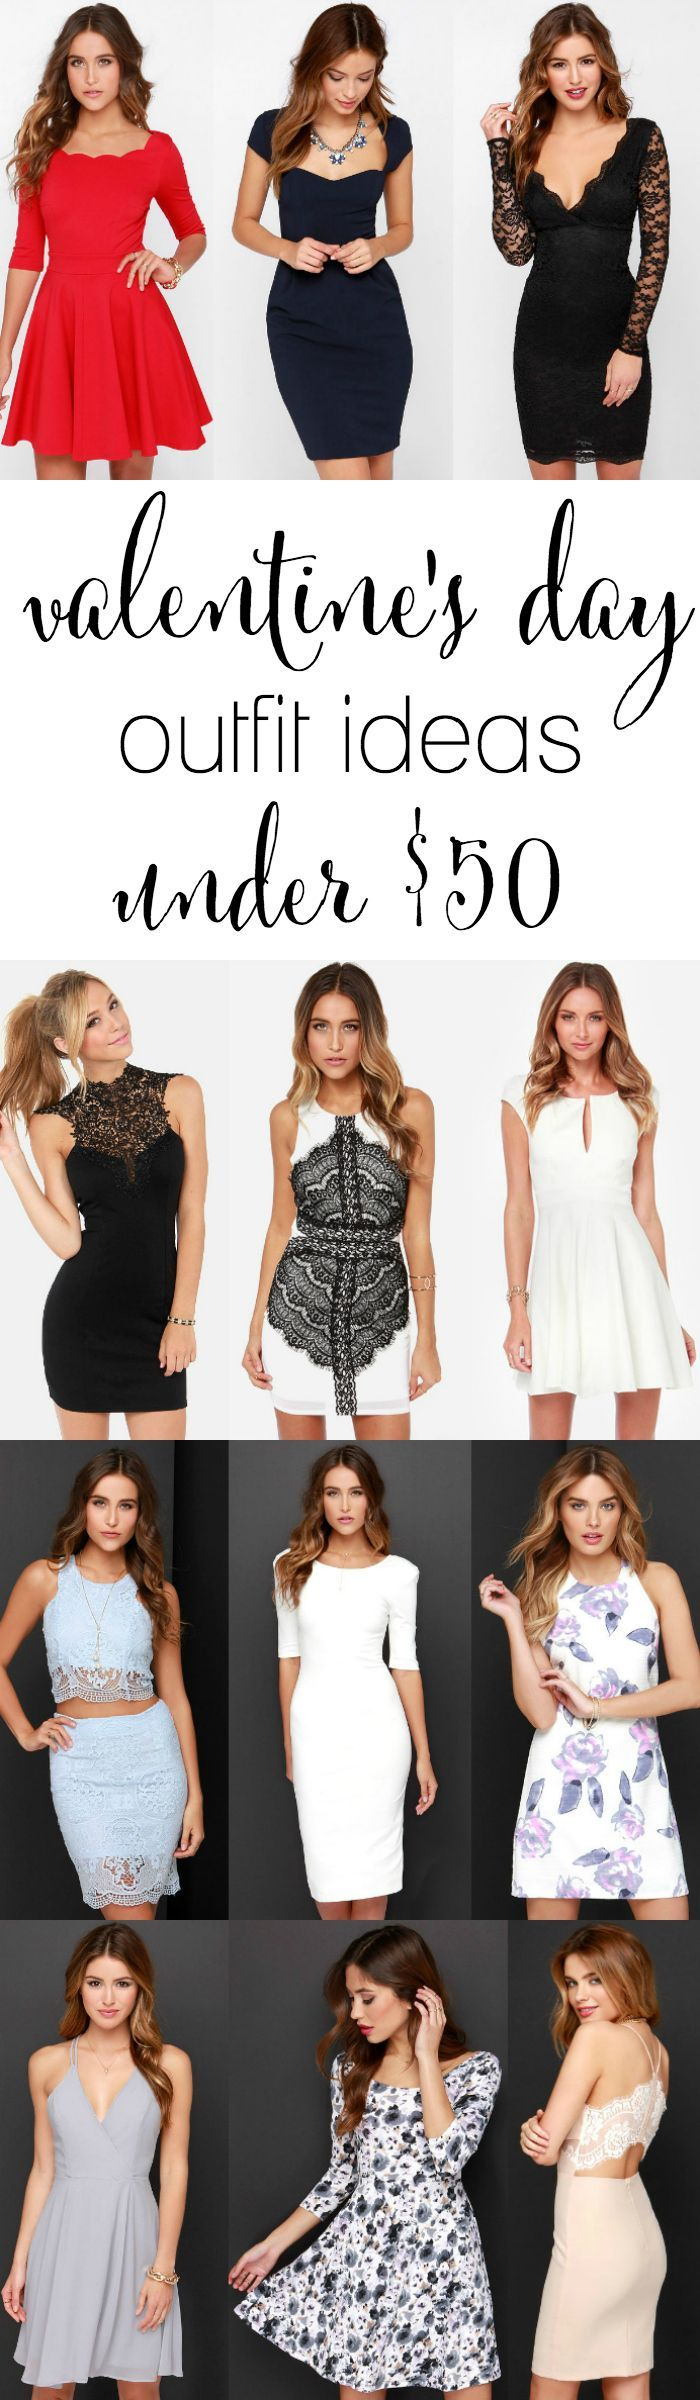 Looking for the perfect outfit for Valentine's Day? I've got you covered with 18 dresses under $50!